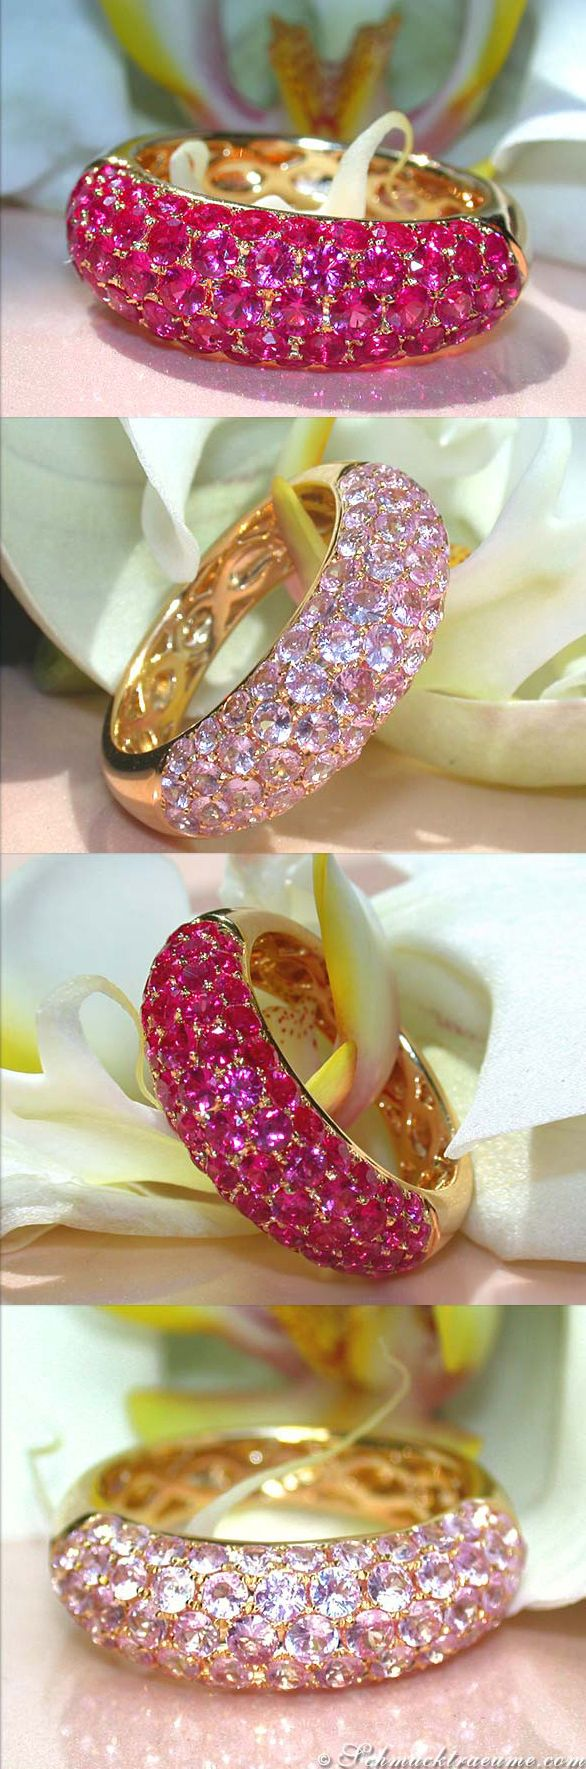 Cute Pavé Rings, Rubies and Pink Sapphires, YG-14K - Find out: schmucktraeume.com - Visit us on FB: https://www.facebook.com/pages/Noble-Juwelen/150871984924926